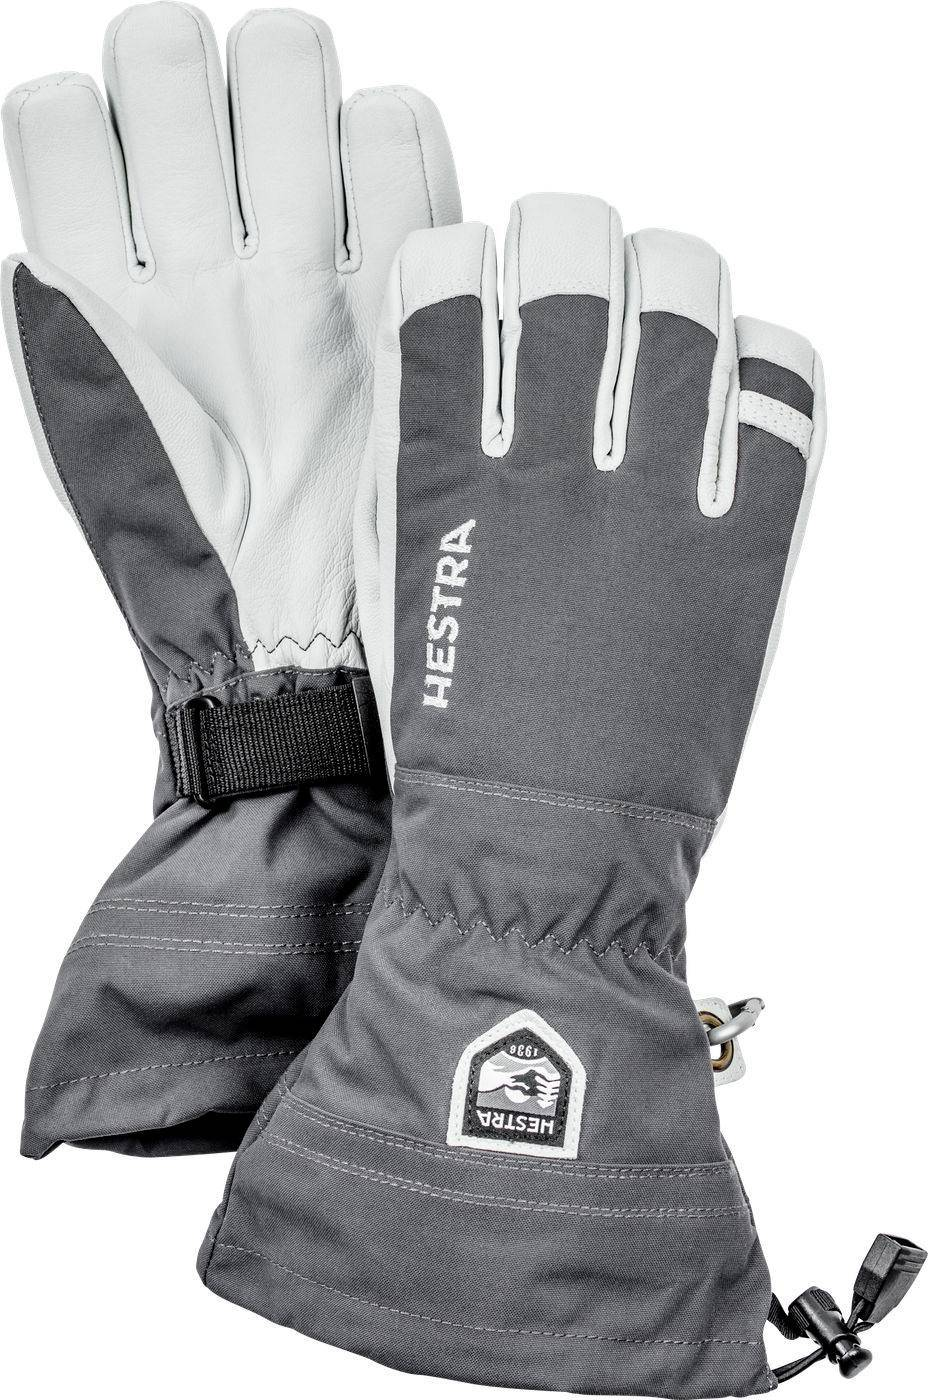 Hestra Army Leather Heli Ski Glove Harmaa 11